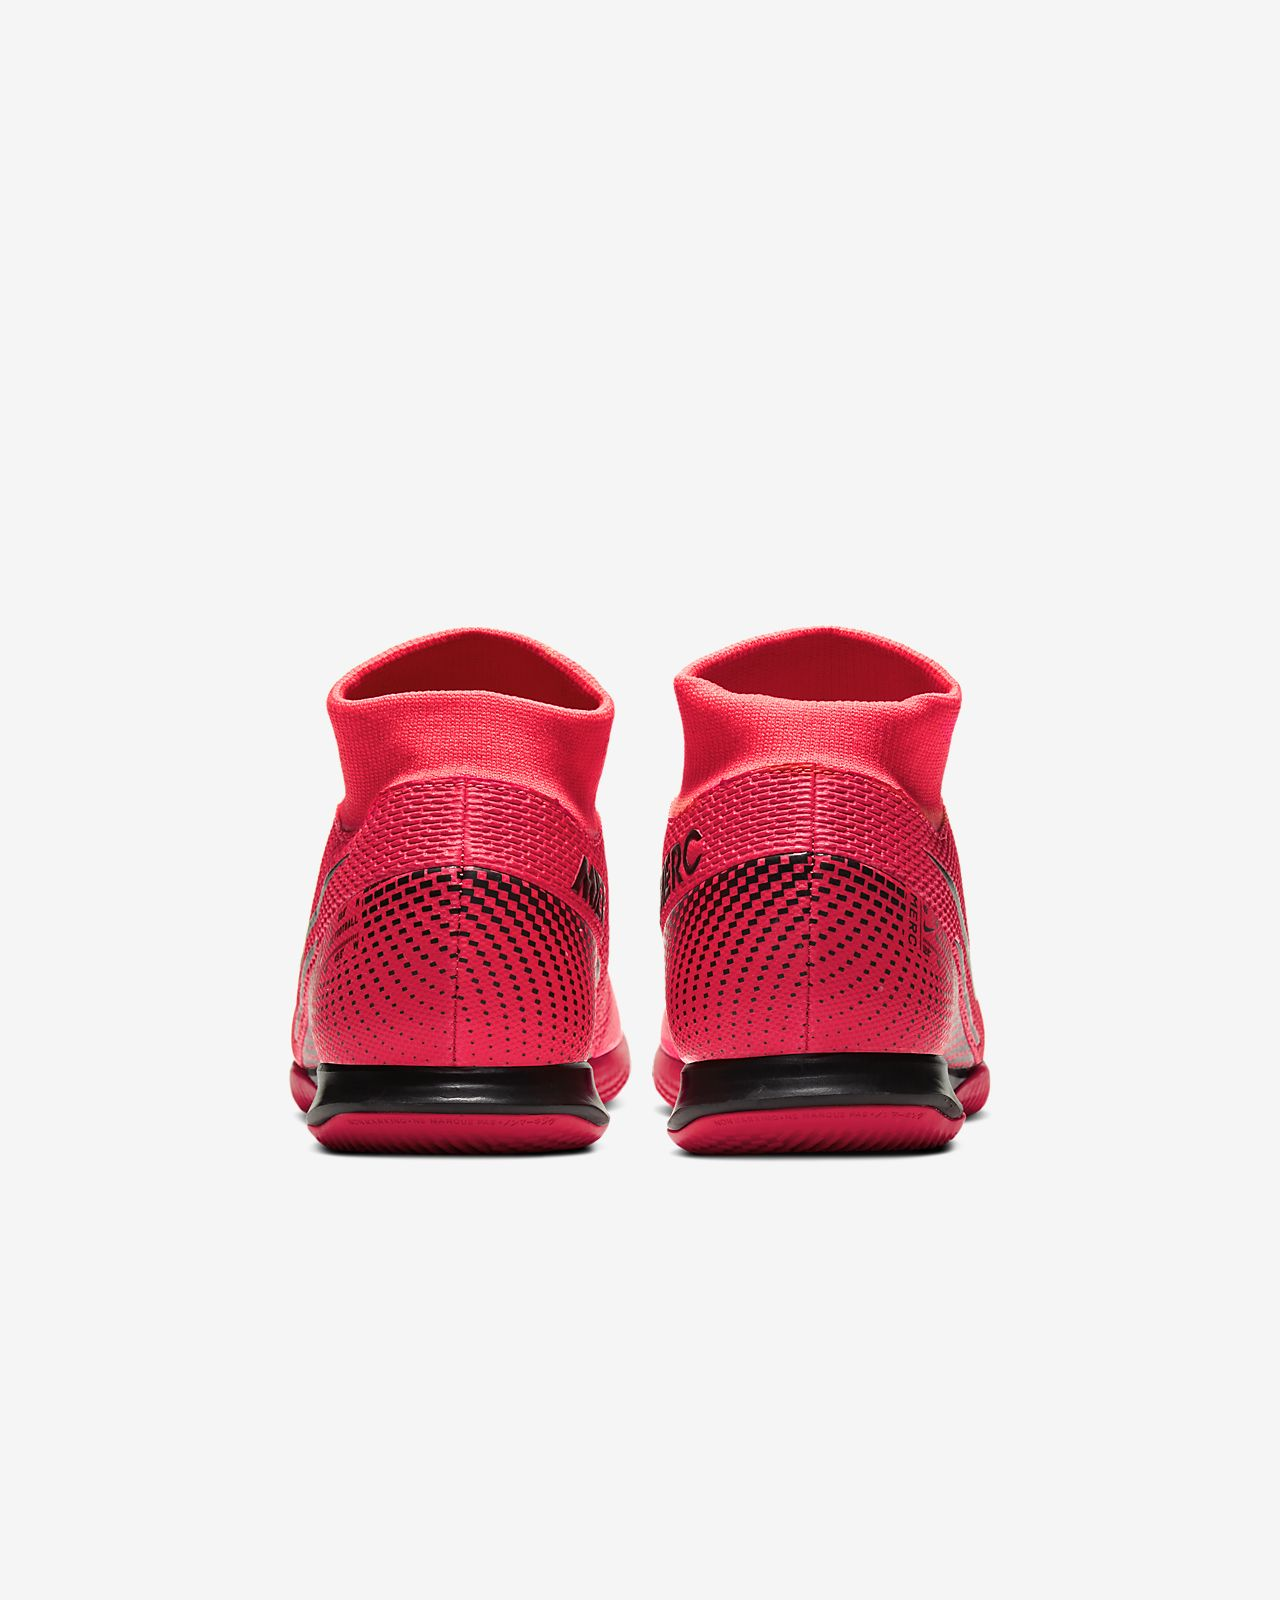 Sapatilhas Nike Mercurial Superfly 7 Academy IC